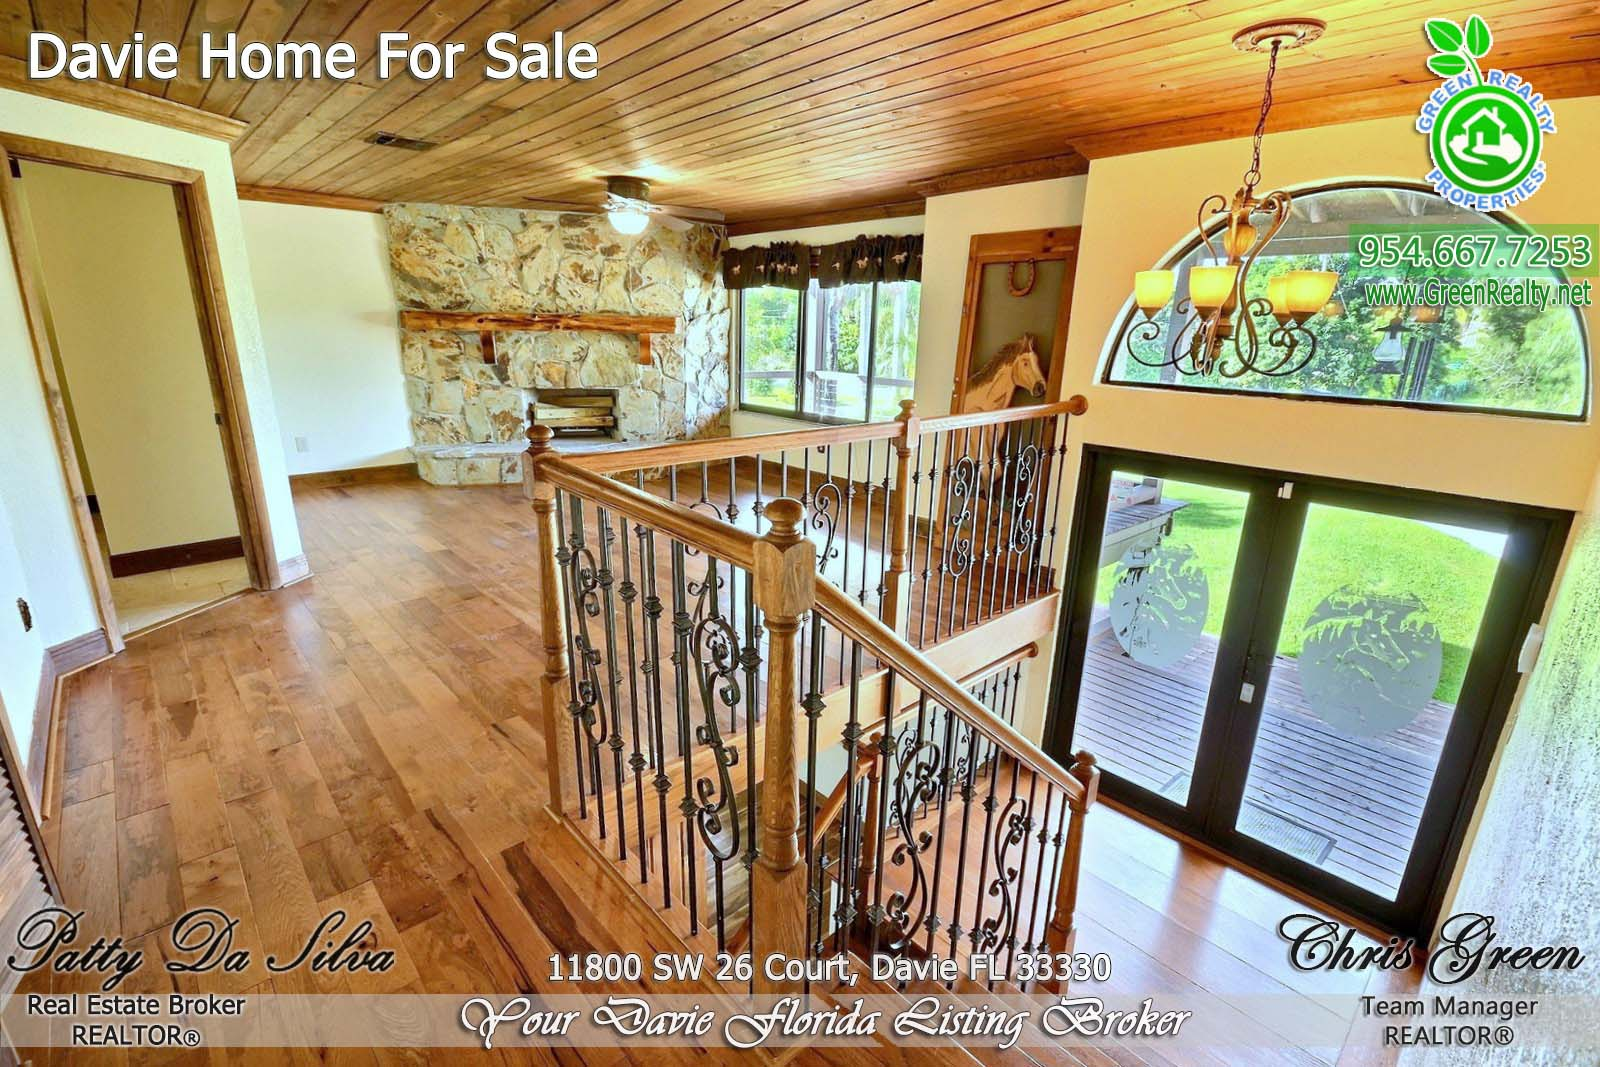 20 Davie Equestrian Homes For Sale (3)